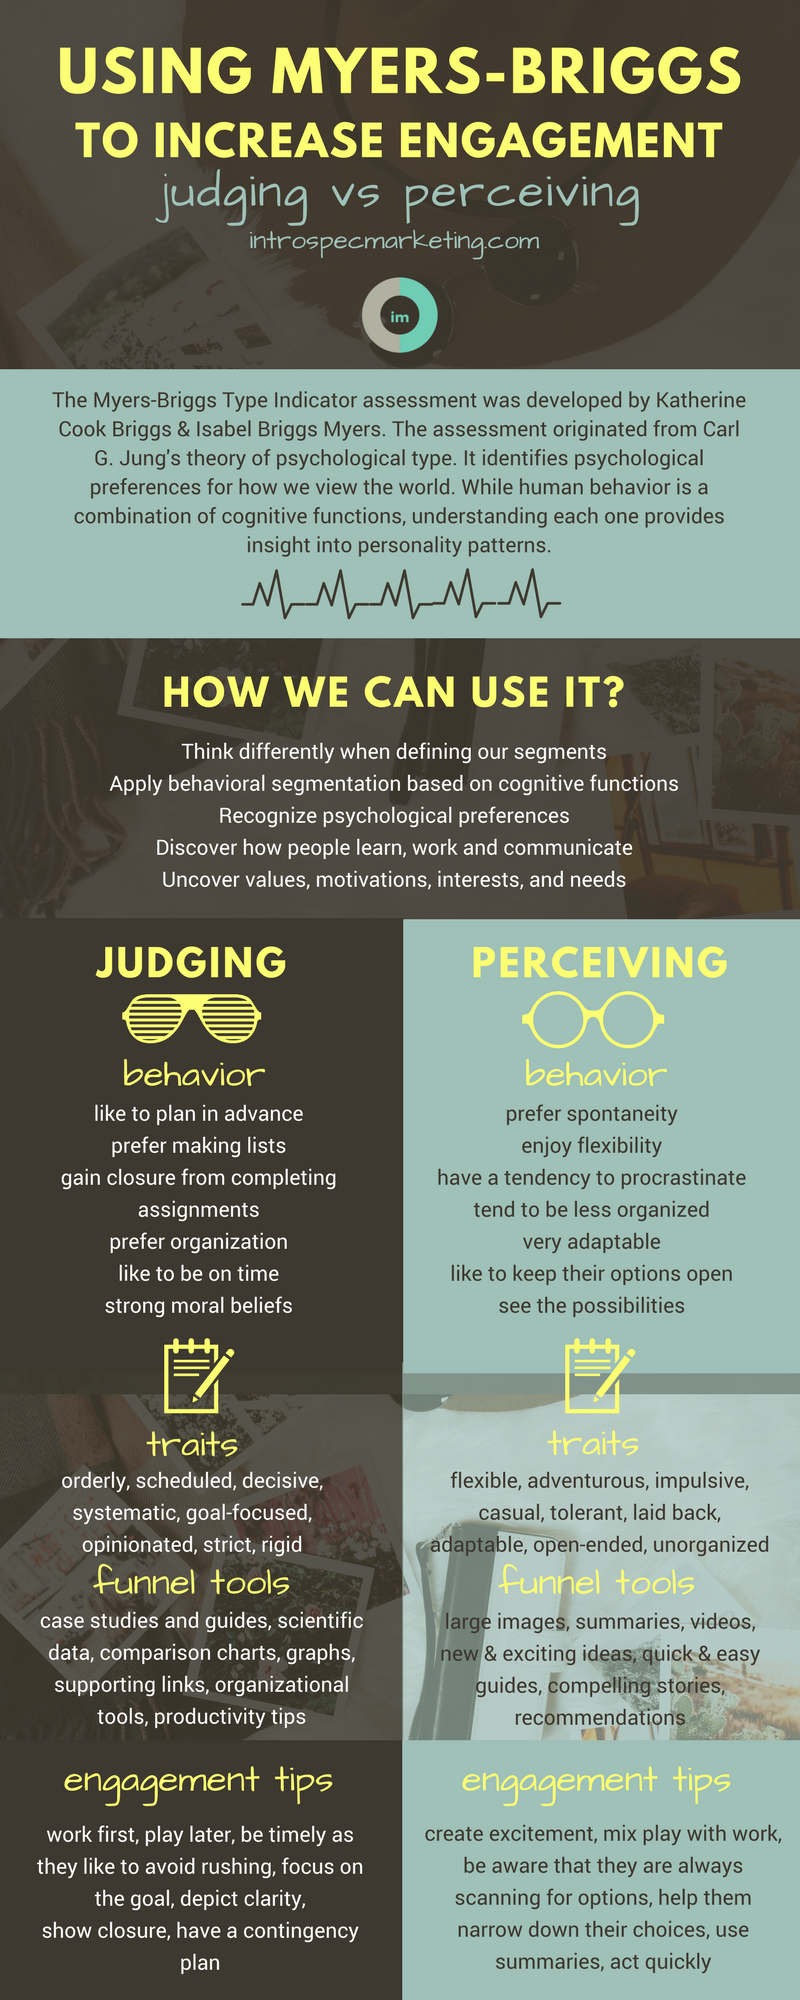 Using Myers-Briggs to Increase Engagement: Judging vs Perceiving